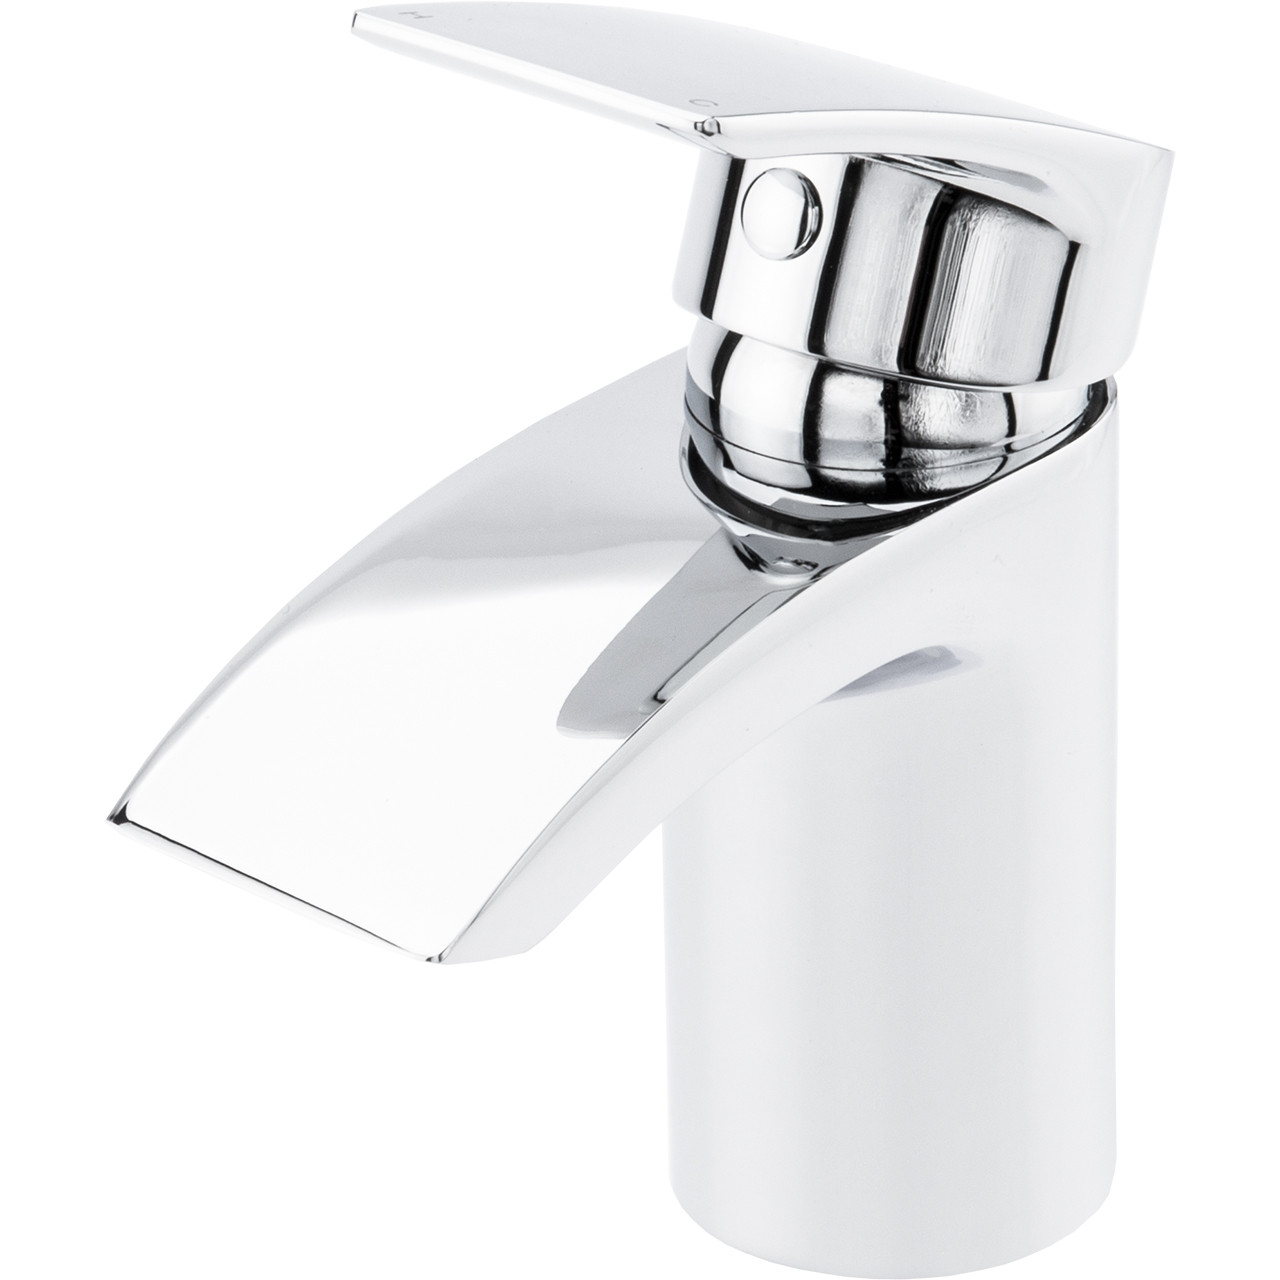 Crest Mini Mono Basin Mixer Tap